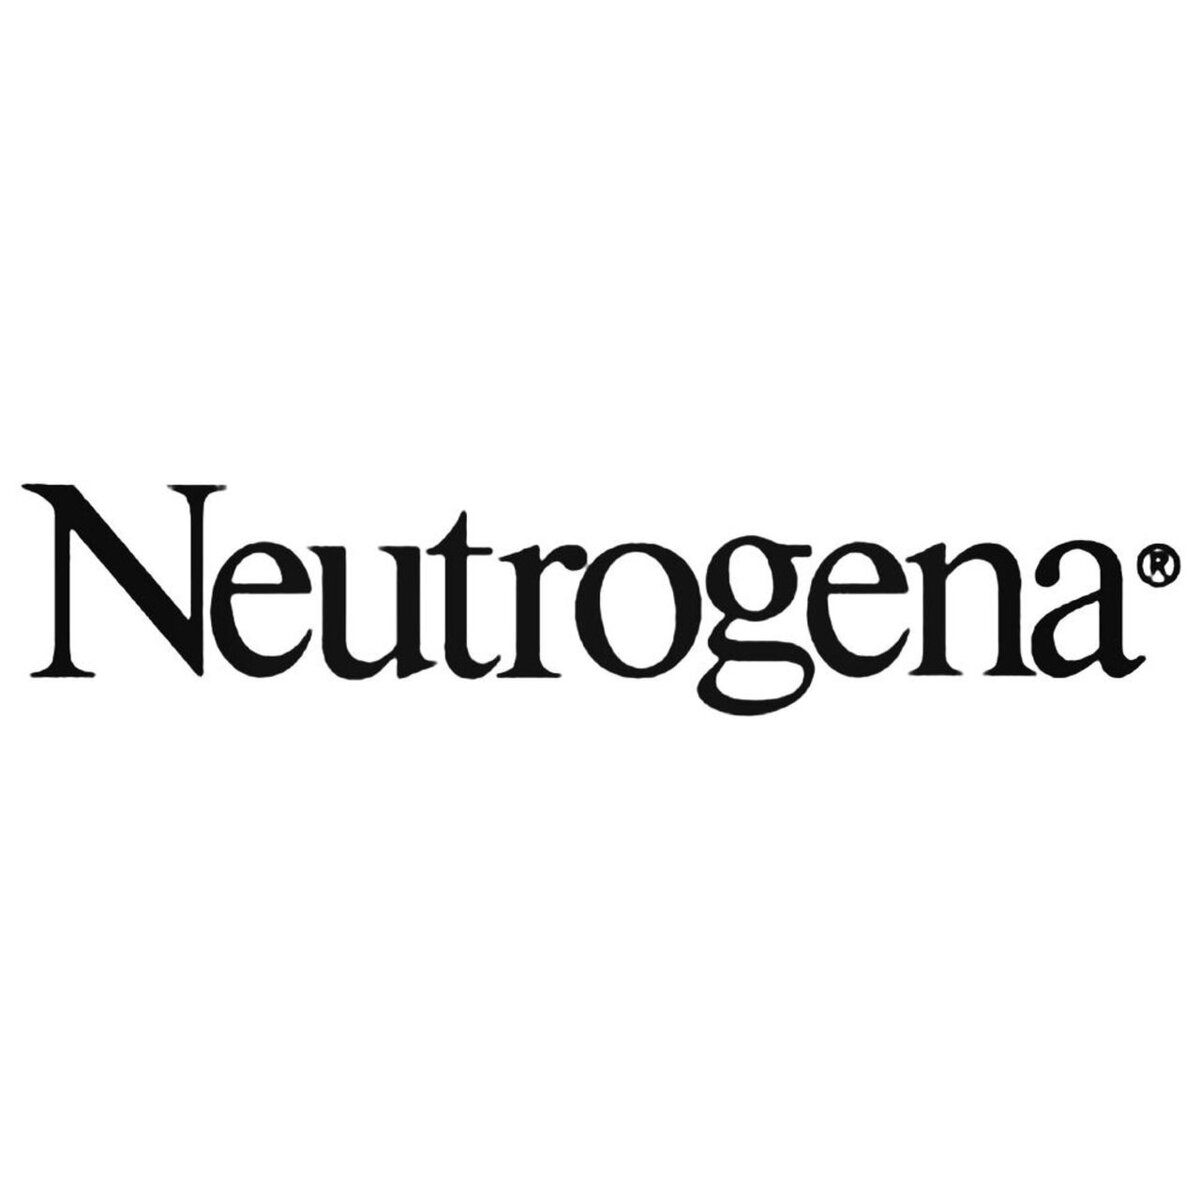 Neutrogena-Logo-Decal-Sticker__36580.1510914018